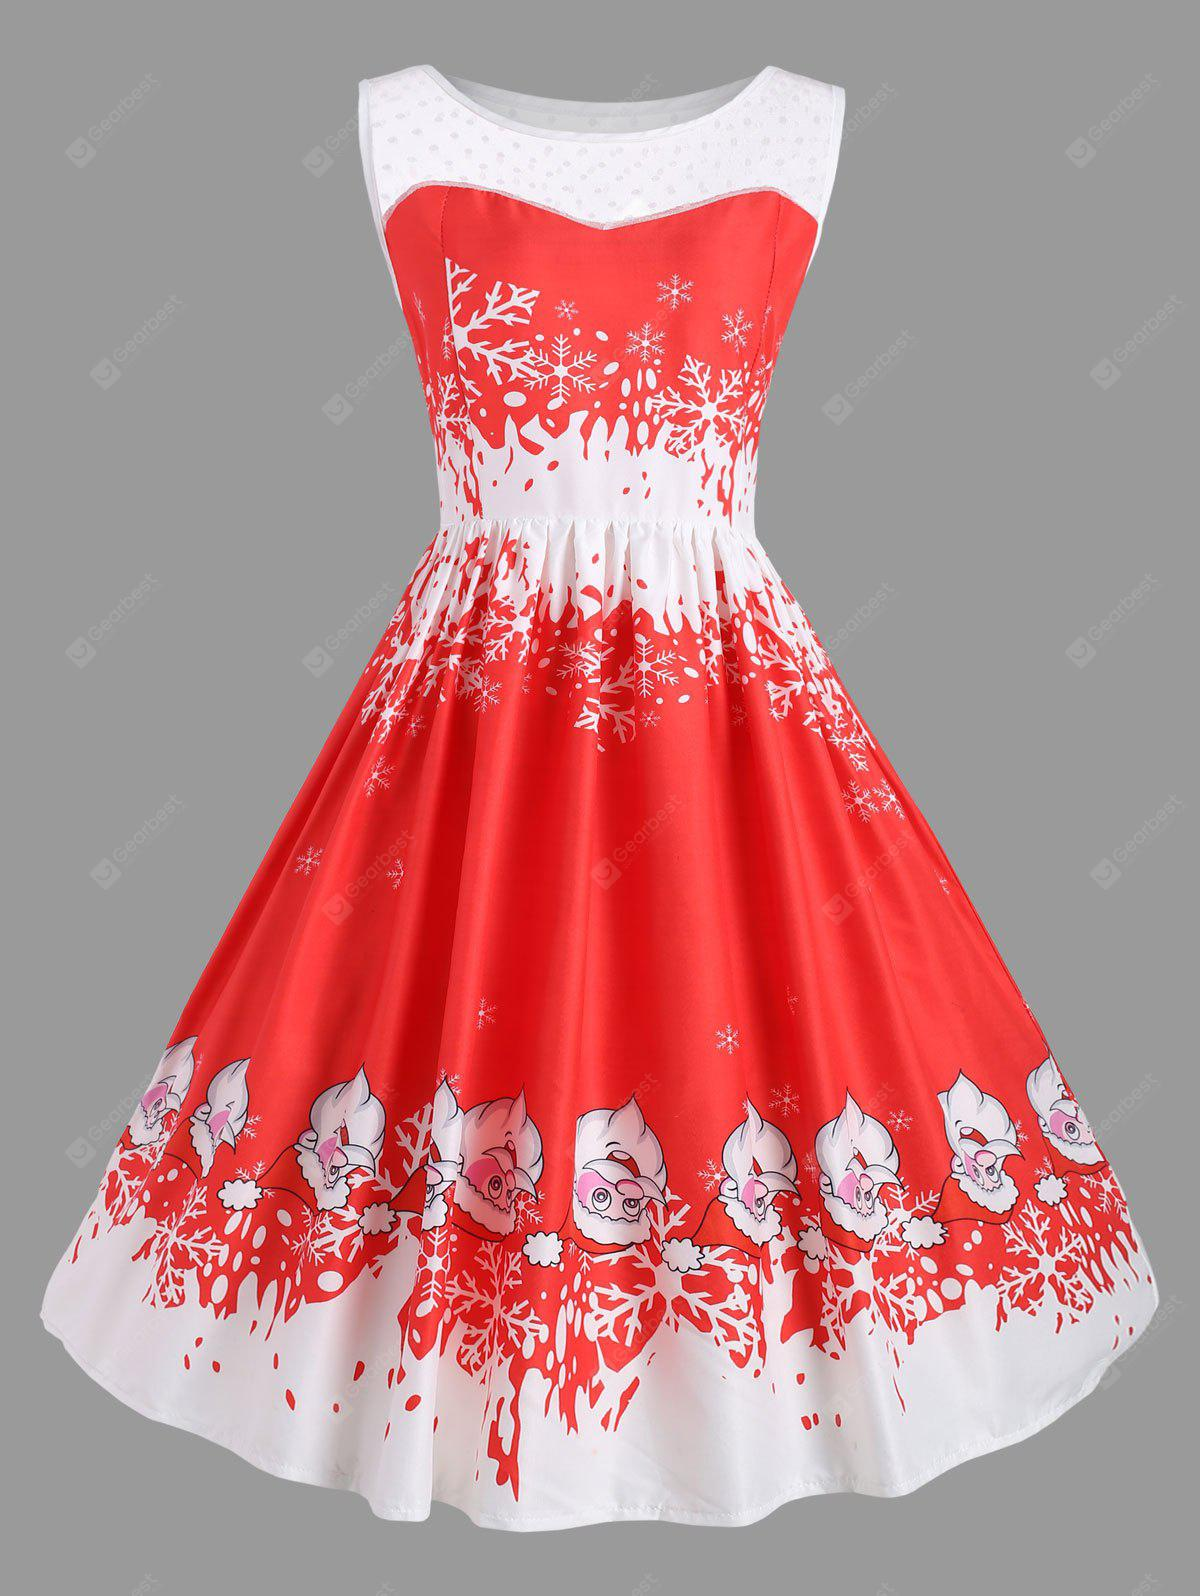 Snowman Swing Vintage Party Dress